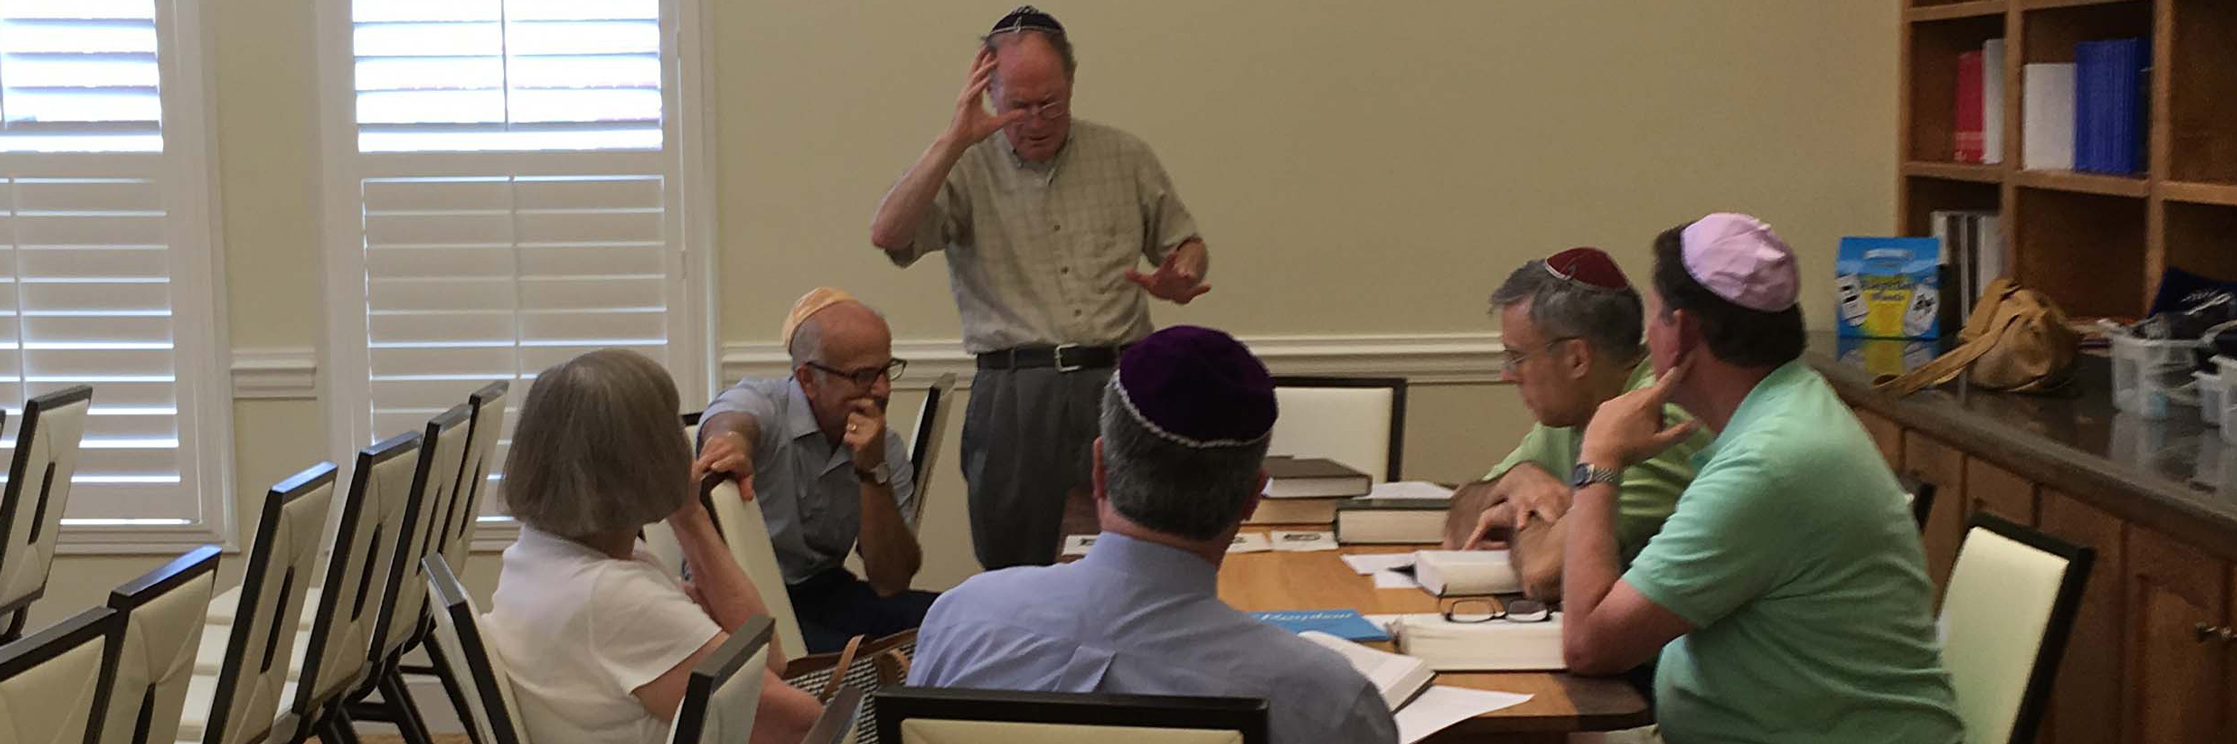 """<span class=""""slider_title"""">                                     Torah Study                                </span>                                                                                                                                                                                       <span class=""""slider_description"""">The synagogue hosts a weekly meeting to study the lessons of the Torah. It is open to the entire community.</span>"""